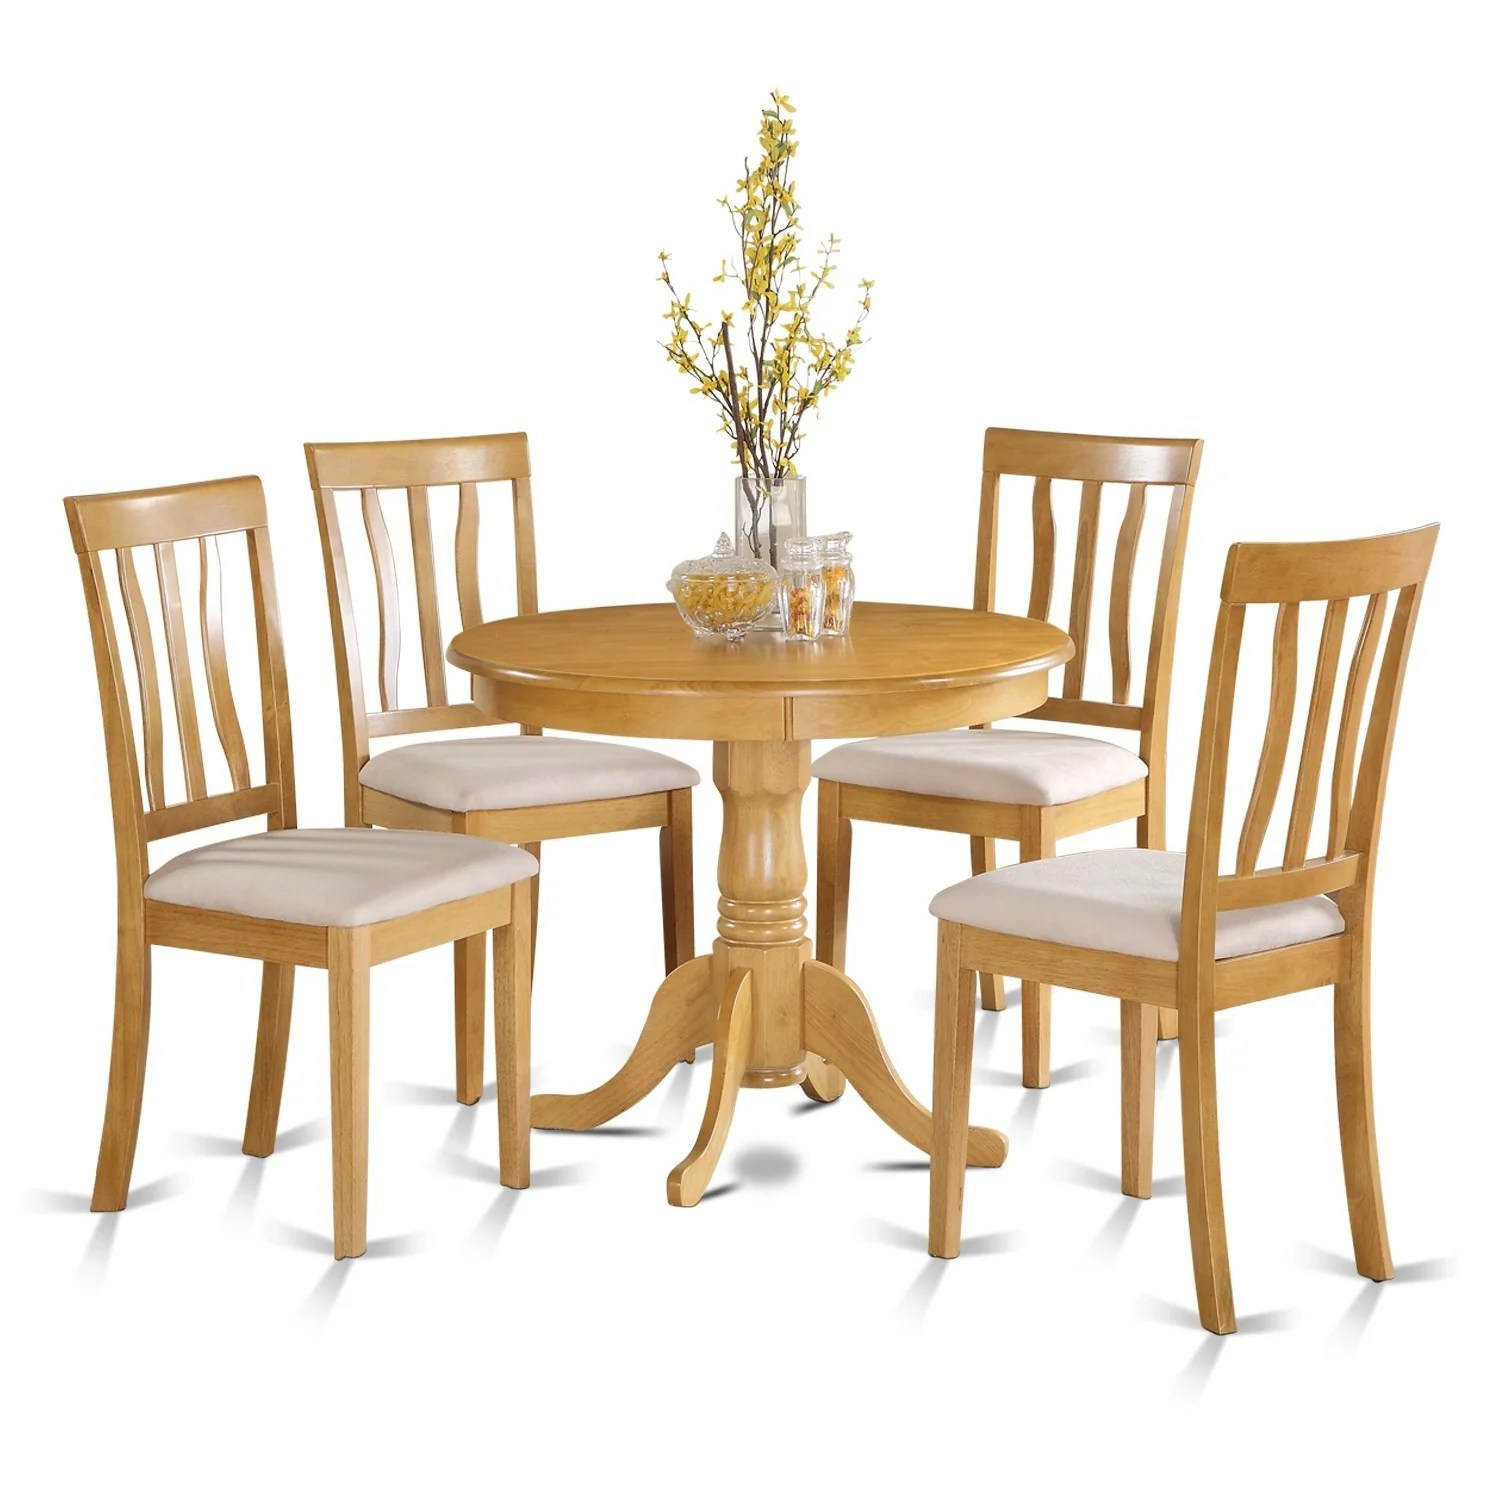 small kitchen table and chairs set ergonomic chair with lumbar support oak 4 dining ebay